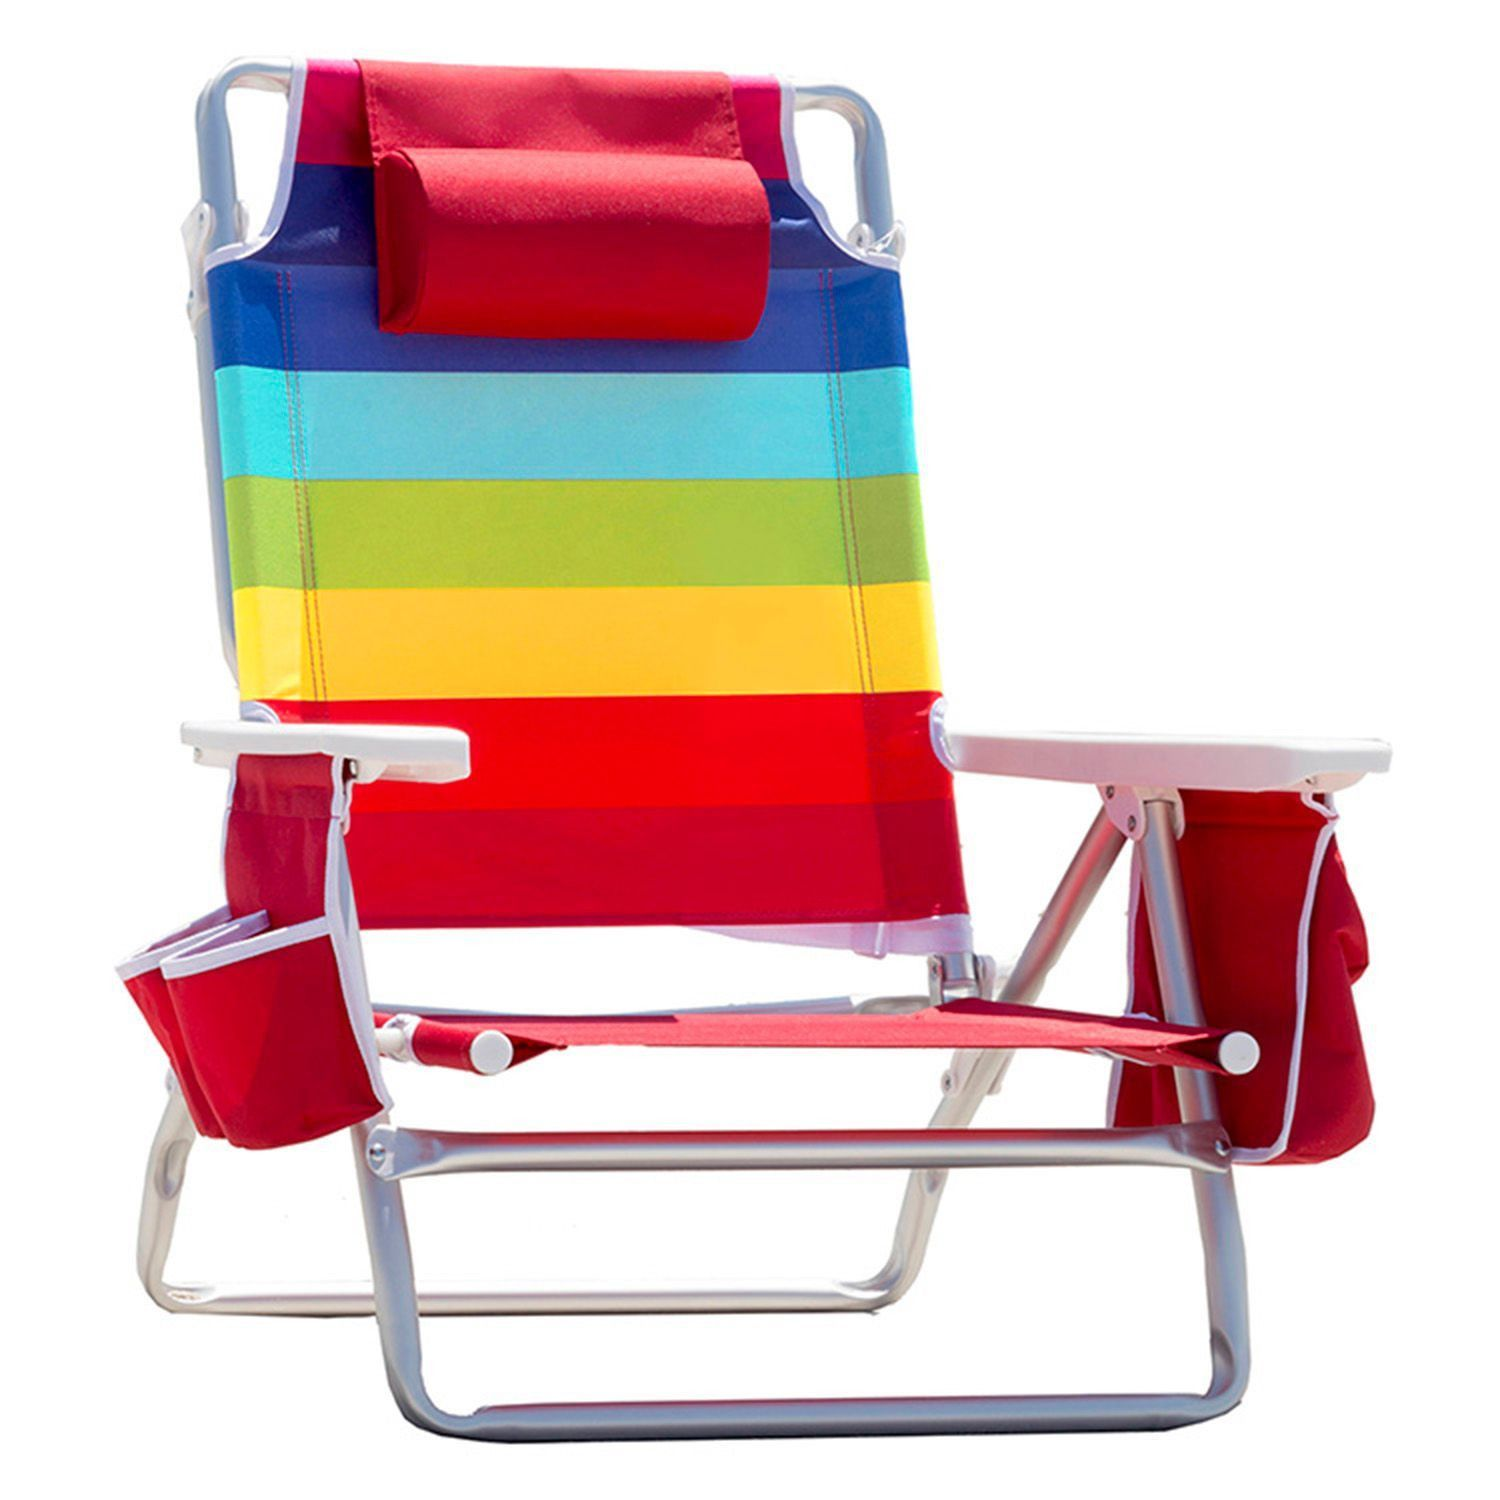 Nautica Beach Chair w Side Cooler Pouch & Cup Holders Rainbow